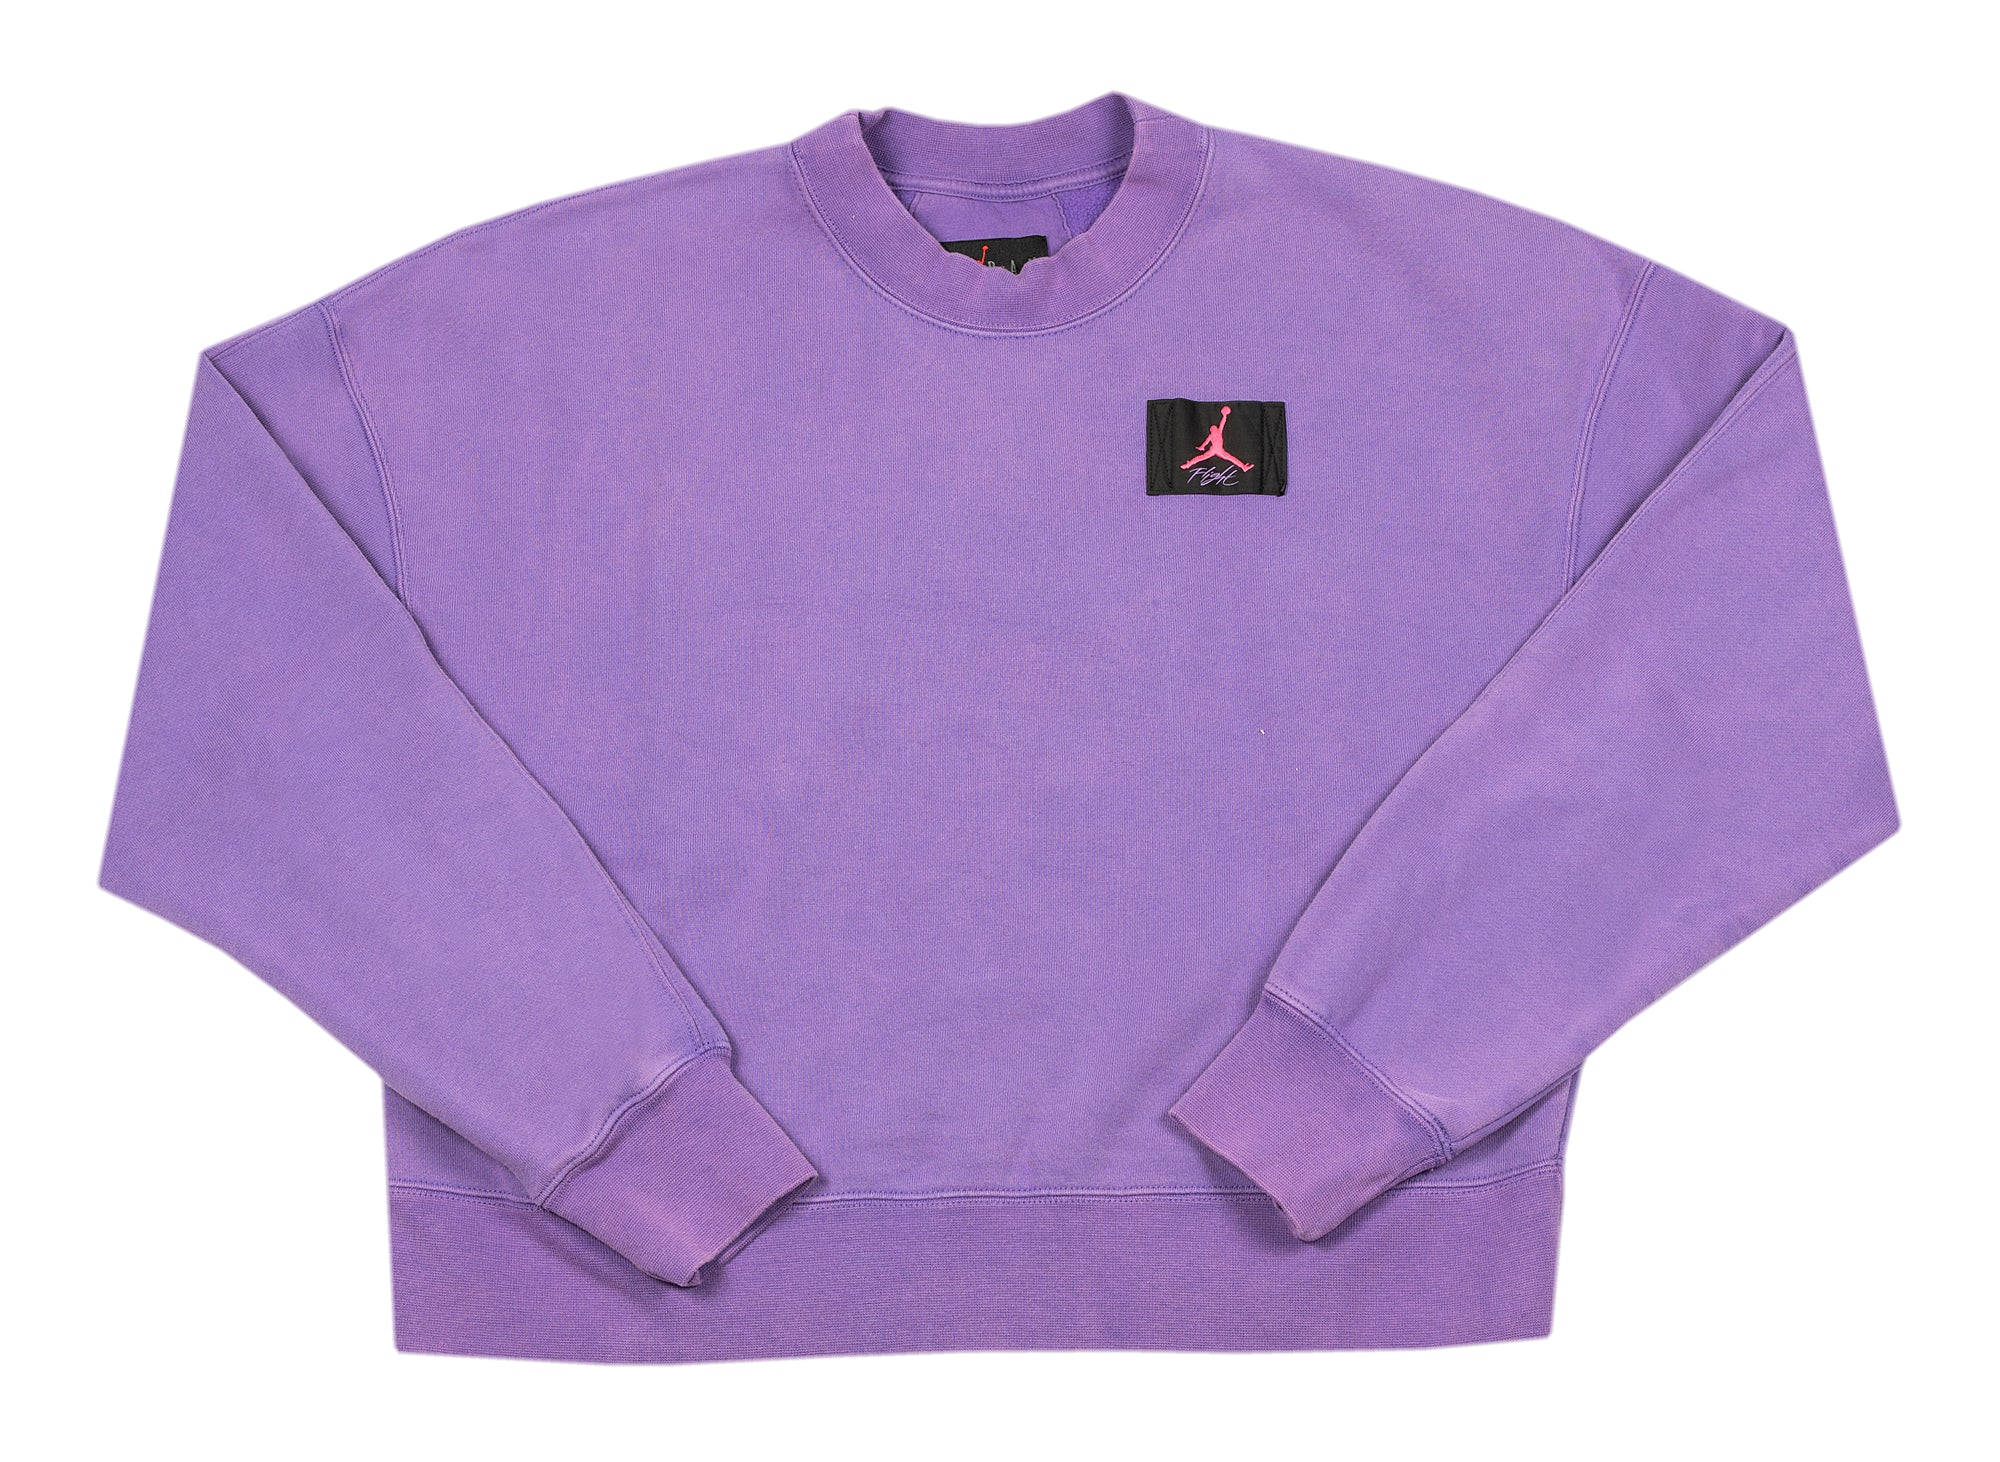 Women's Jordan Flight Fleece Crewneck in Violet xld